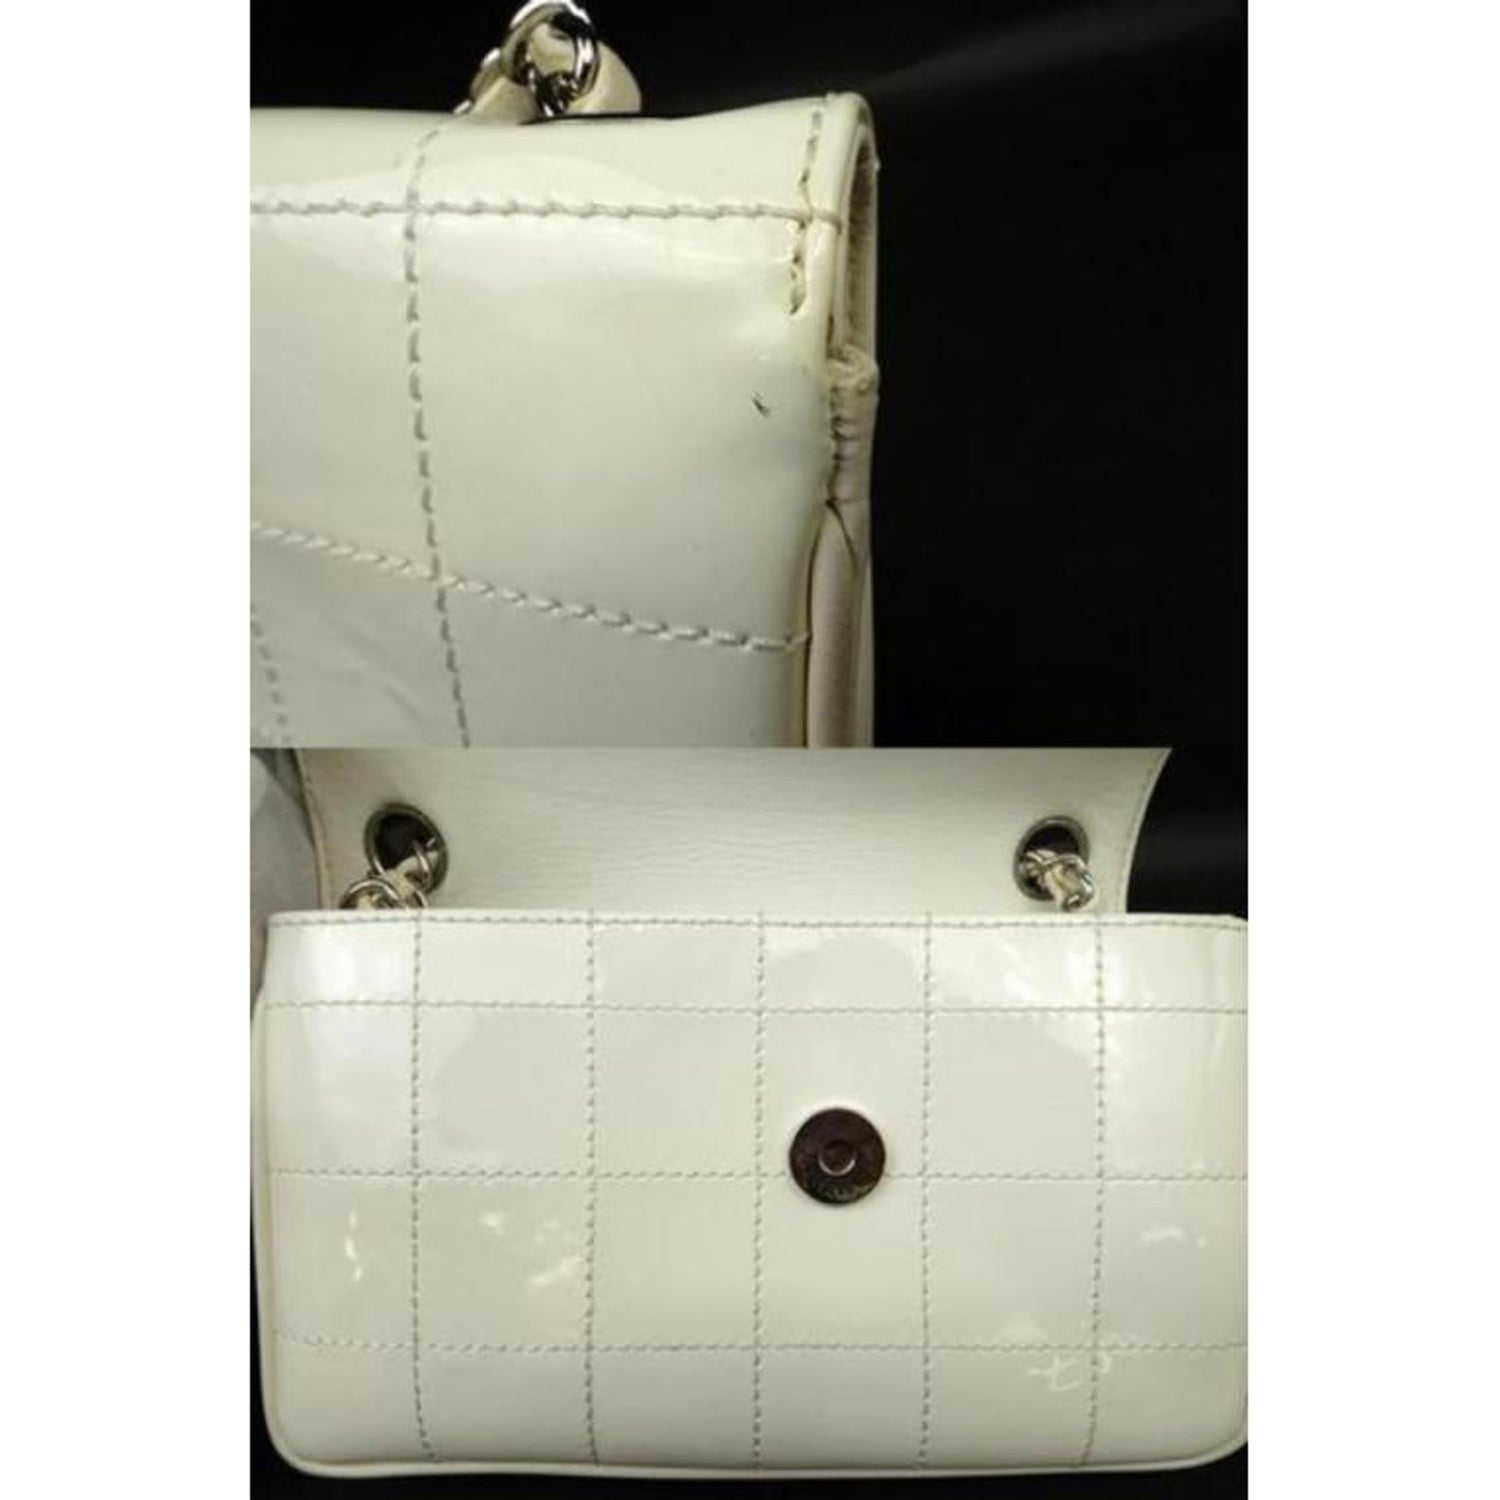 4194a3c40917 Chanel Jumbo Cc Logo Zig Zag 221349 White Patent Leather Shoulder Bag For  Sale at 1stdibs